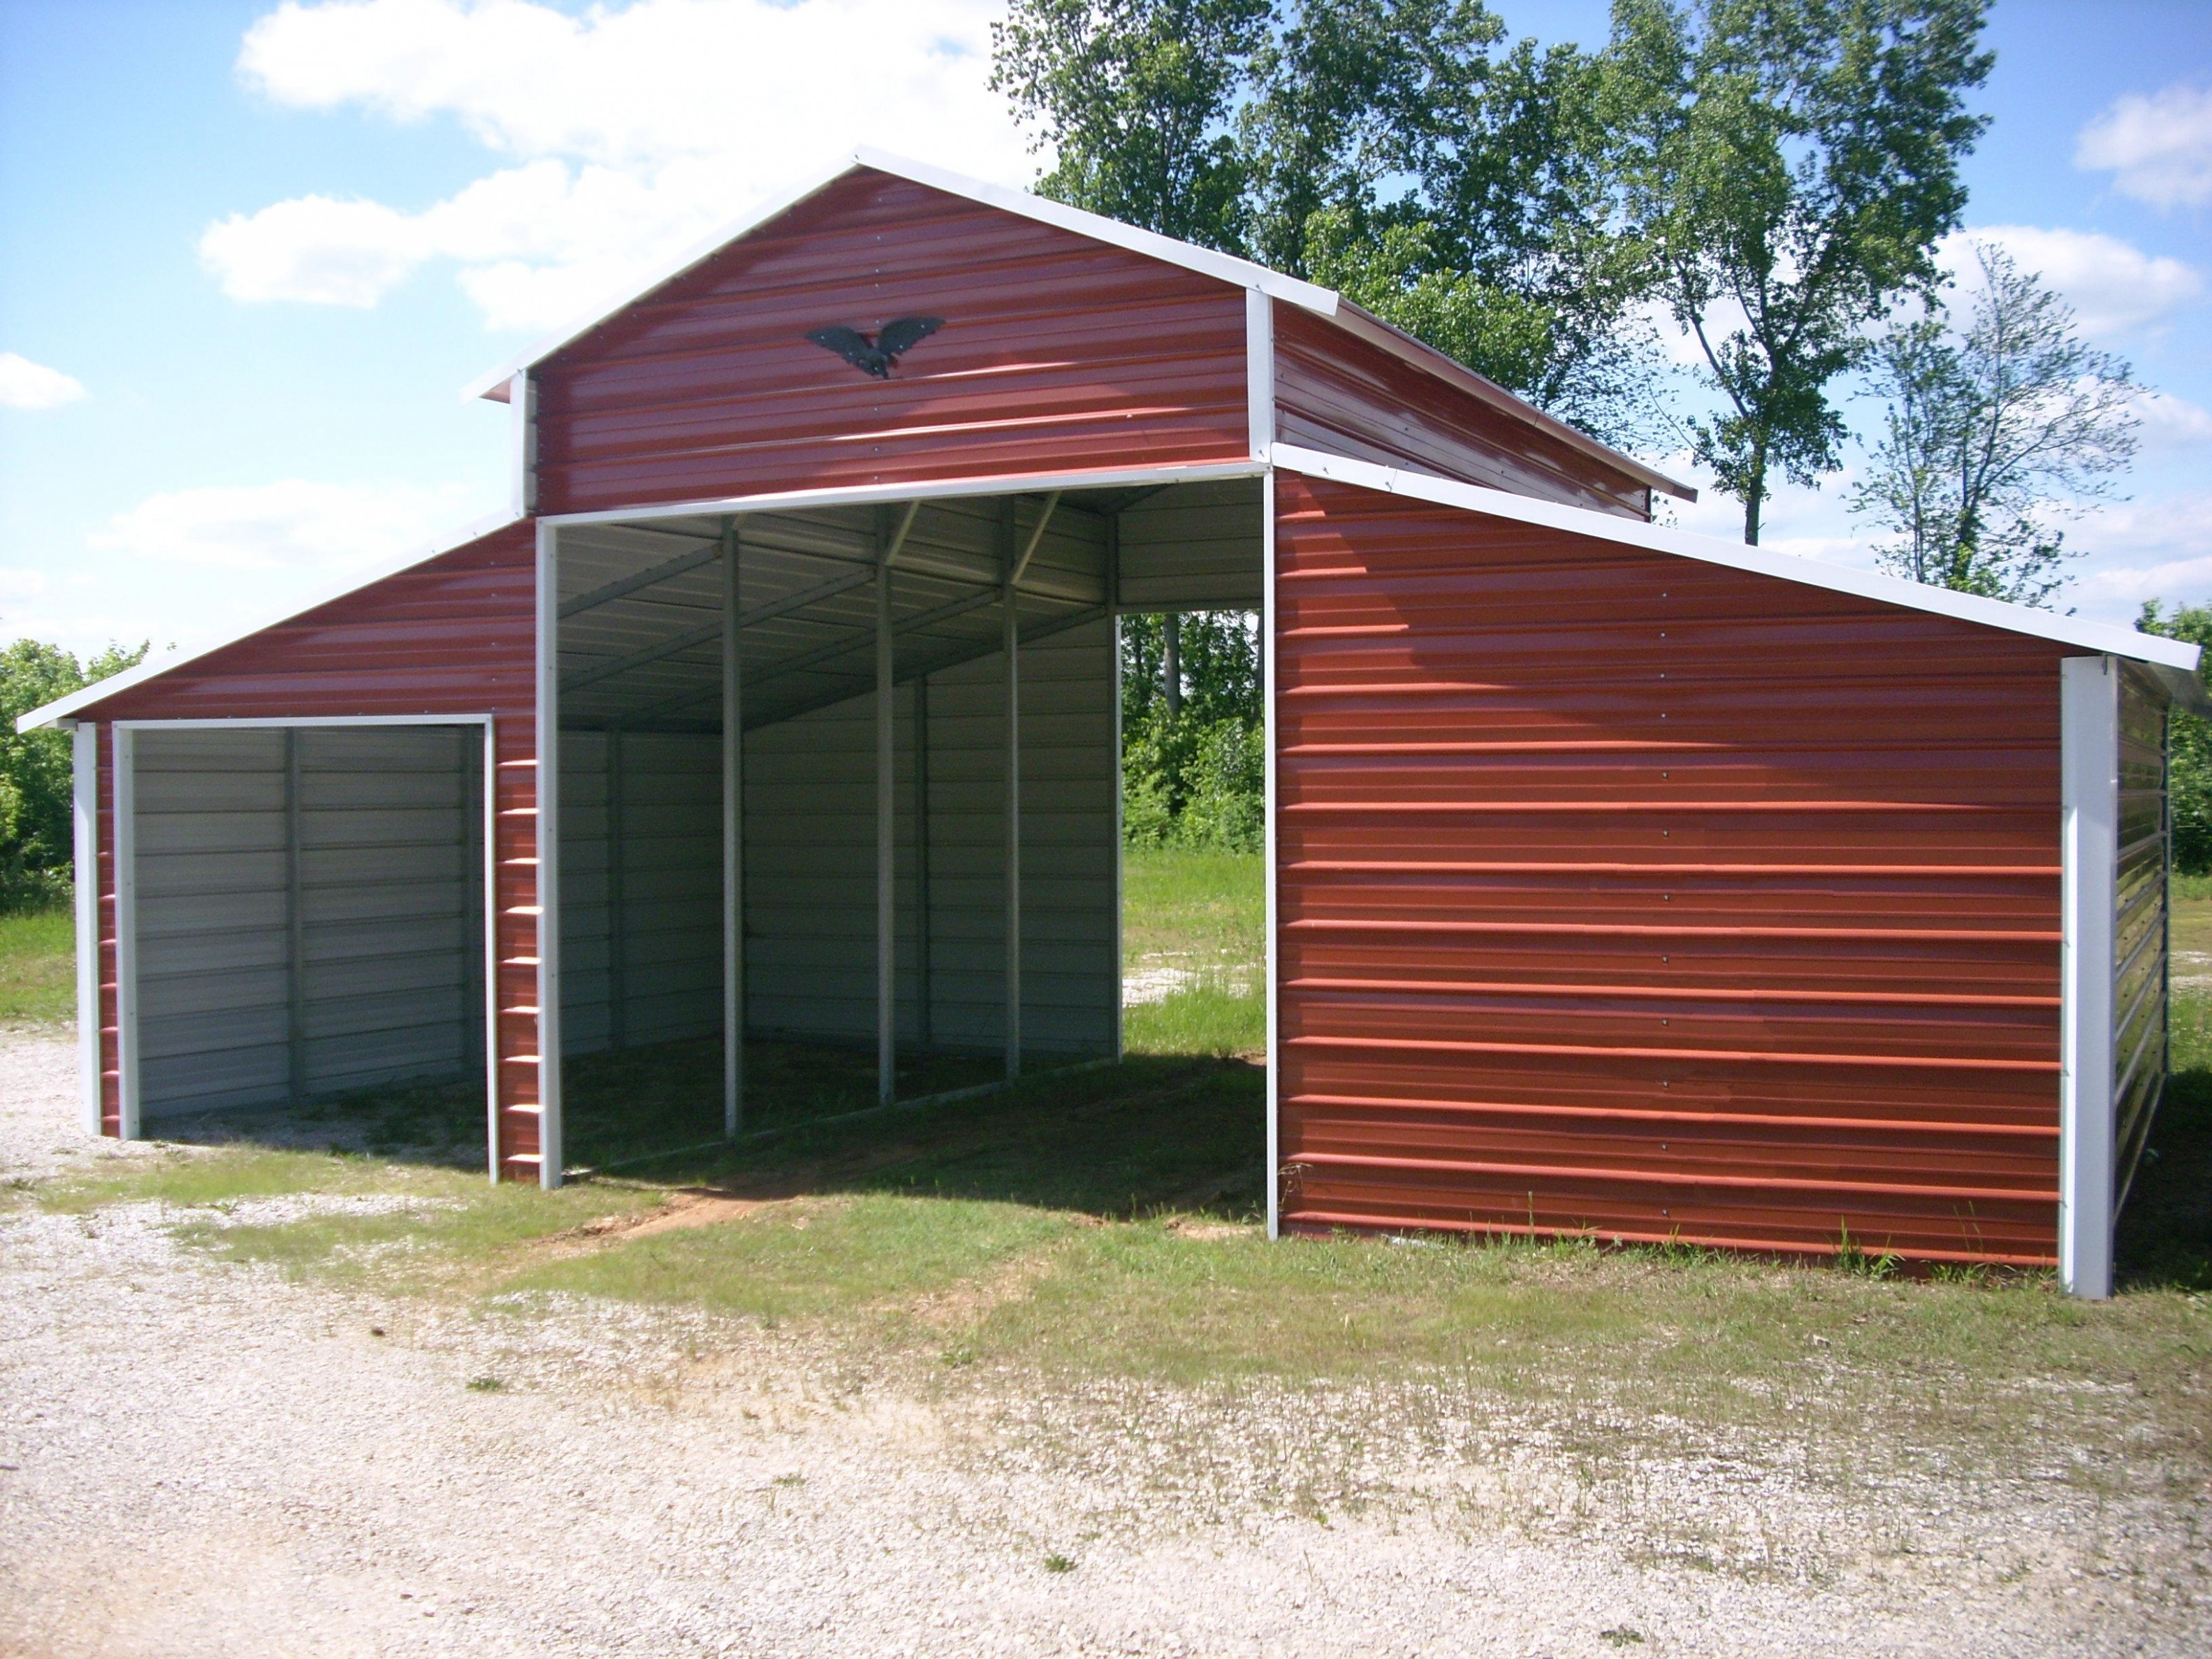 11 Secrets About Eagle Carports And Garages That Has Never Been Revealed For The Past 111 Years | eagle carports and garages